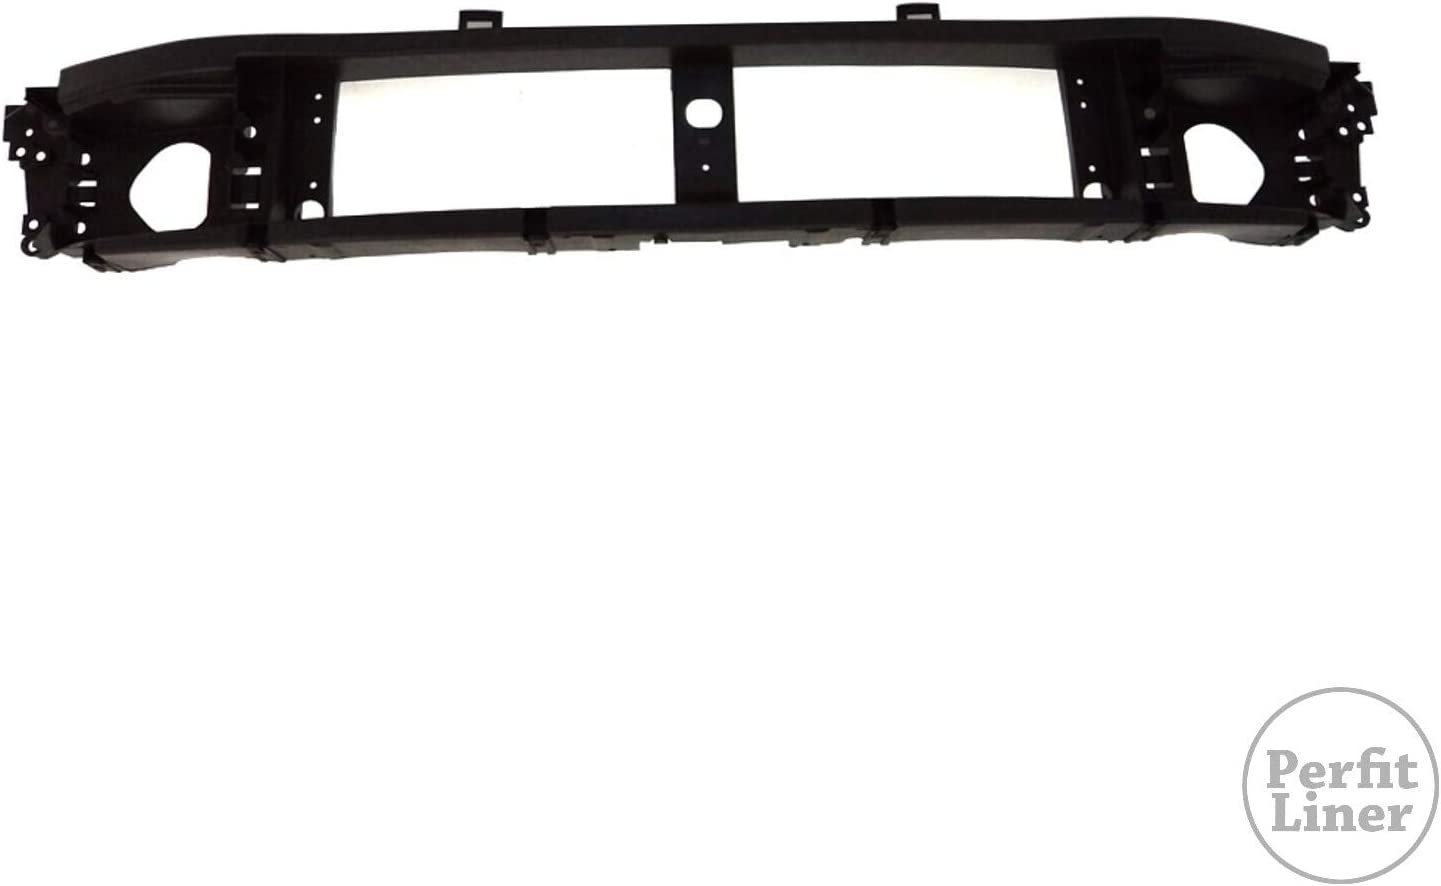 Perfit Liner New Replacement Parts Front Header Panel For Ford Expedition F-250 Lobo F-150 Fits FO1220210 F85Z8A284BA